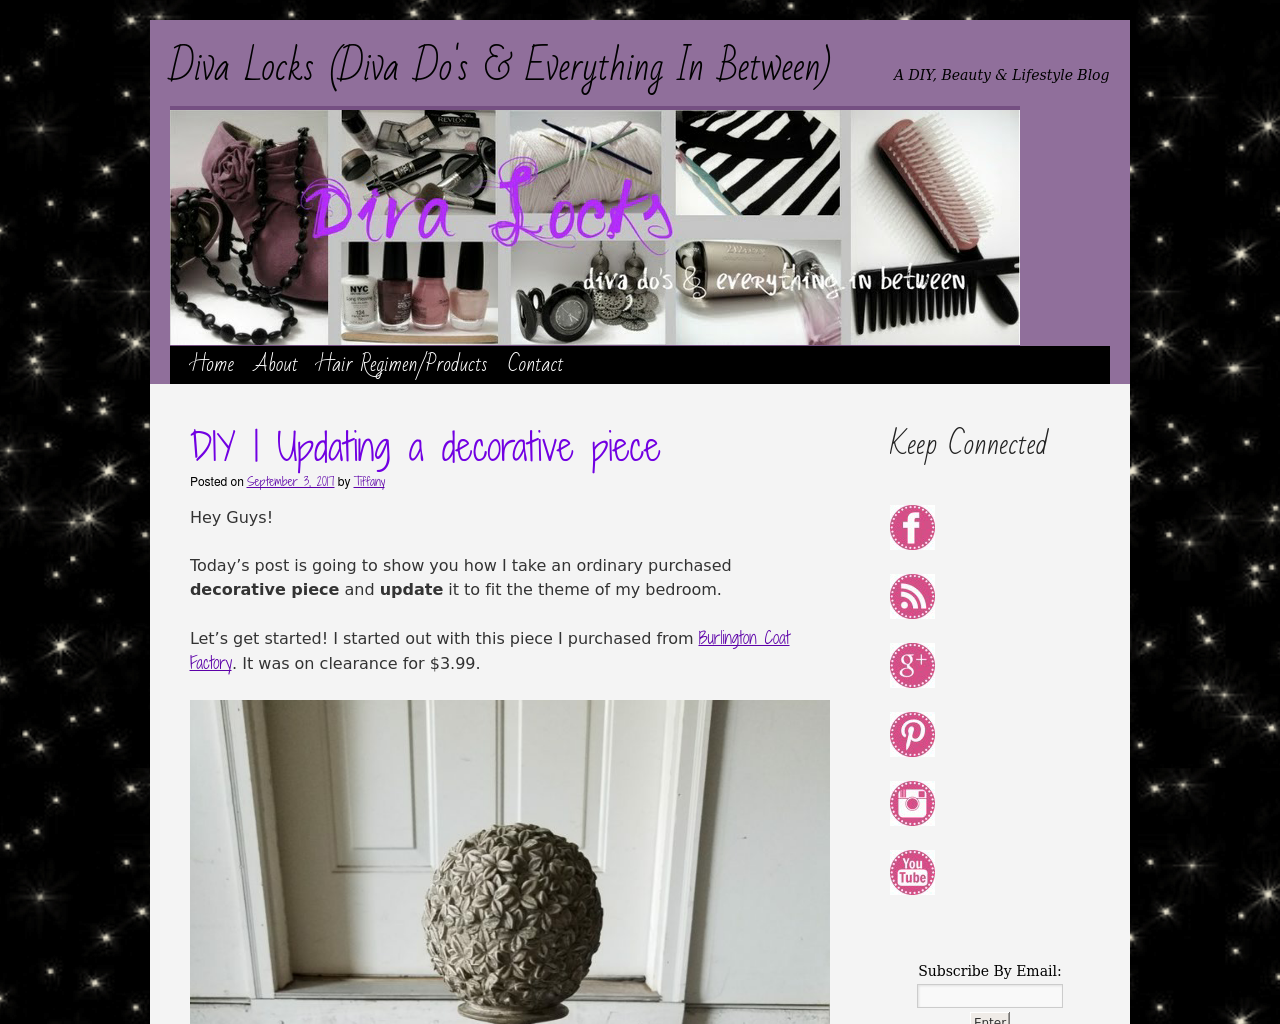 Diva-Locks-Advertising-Reviews-Pricing